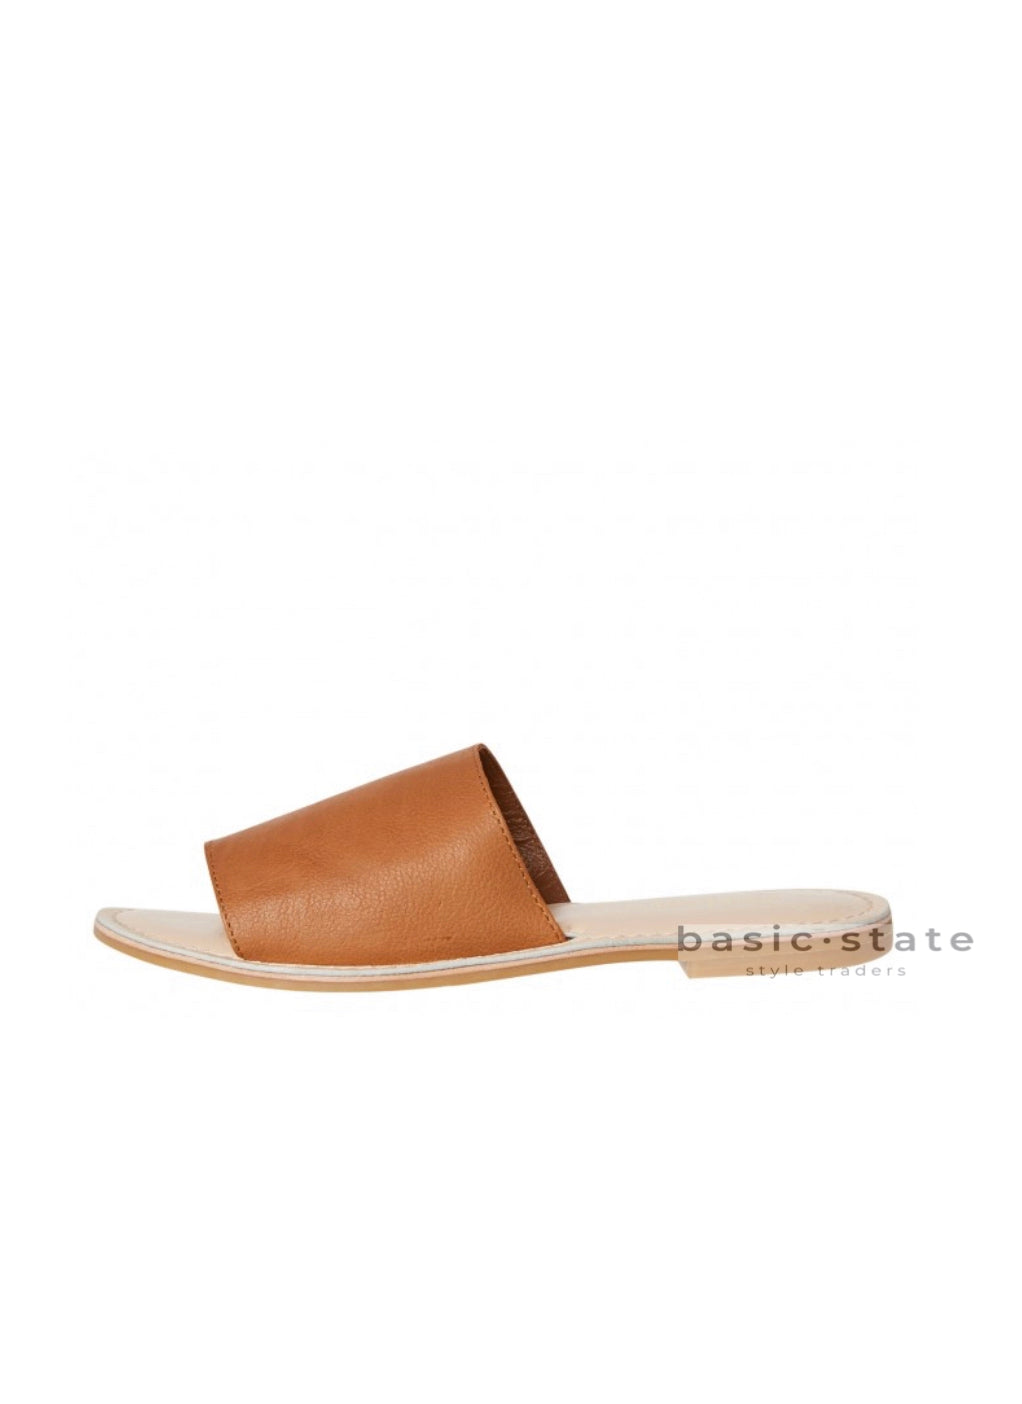 Trinity Slides Tan Leather Shoes - Ladies Super soft leather Slides Leather Sandals Leather Slides Tan leather shoes - Basic State